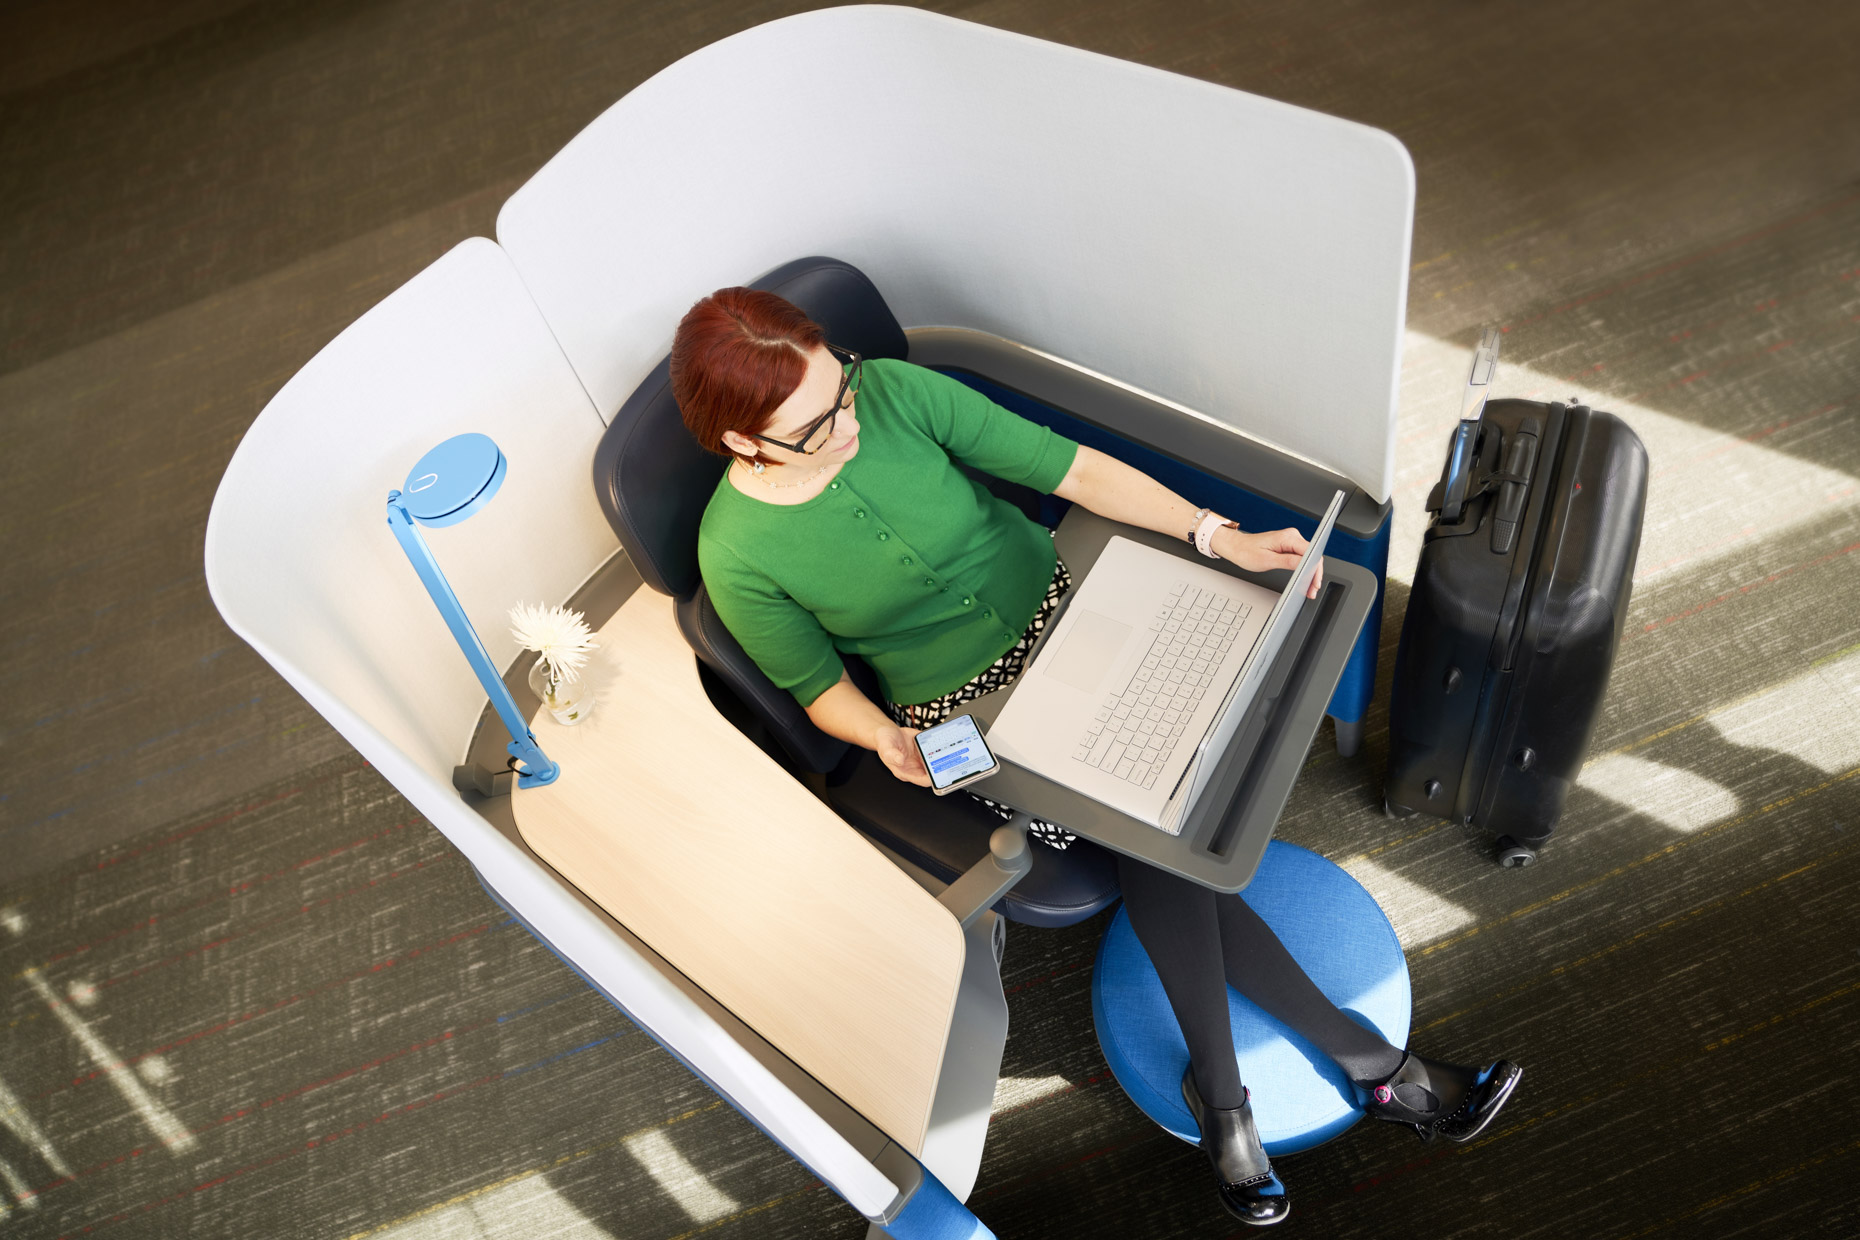 Woman working in privacy pod in airport